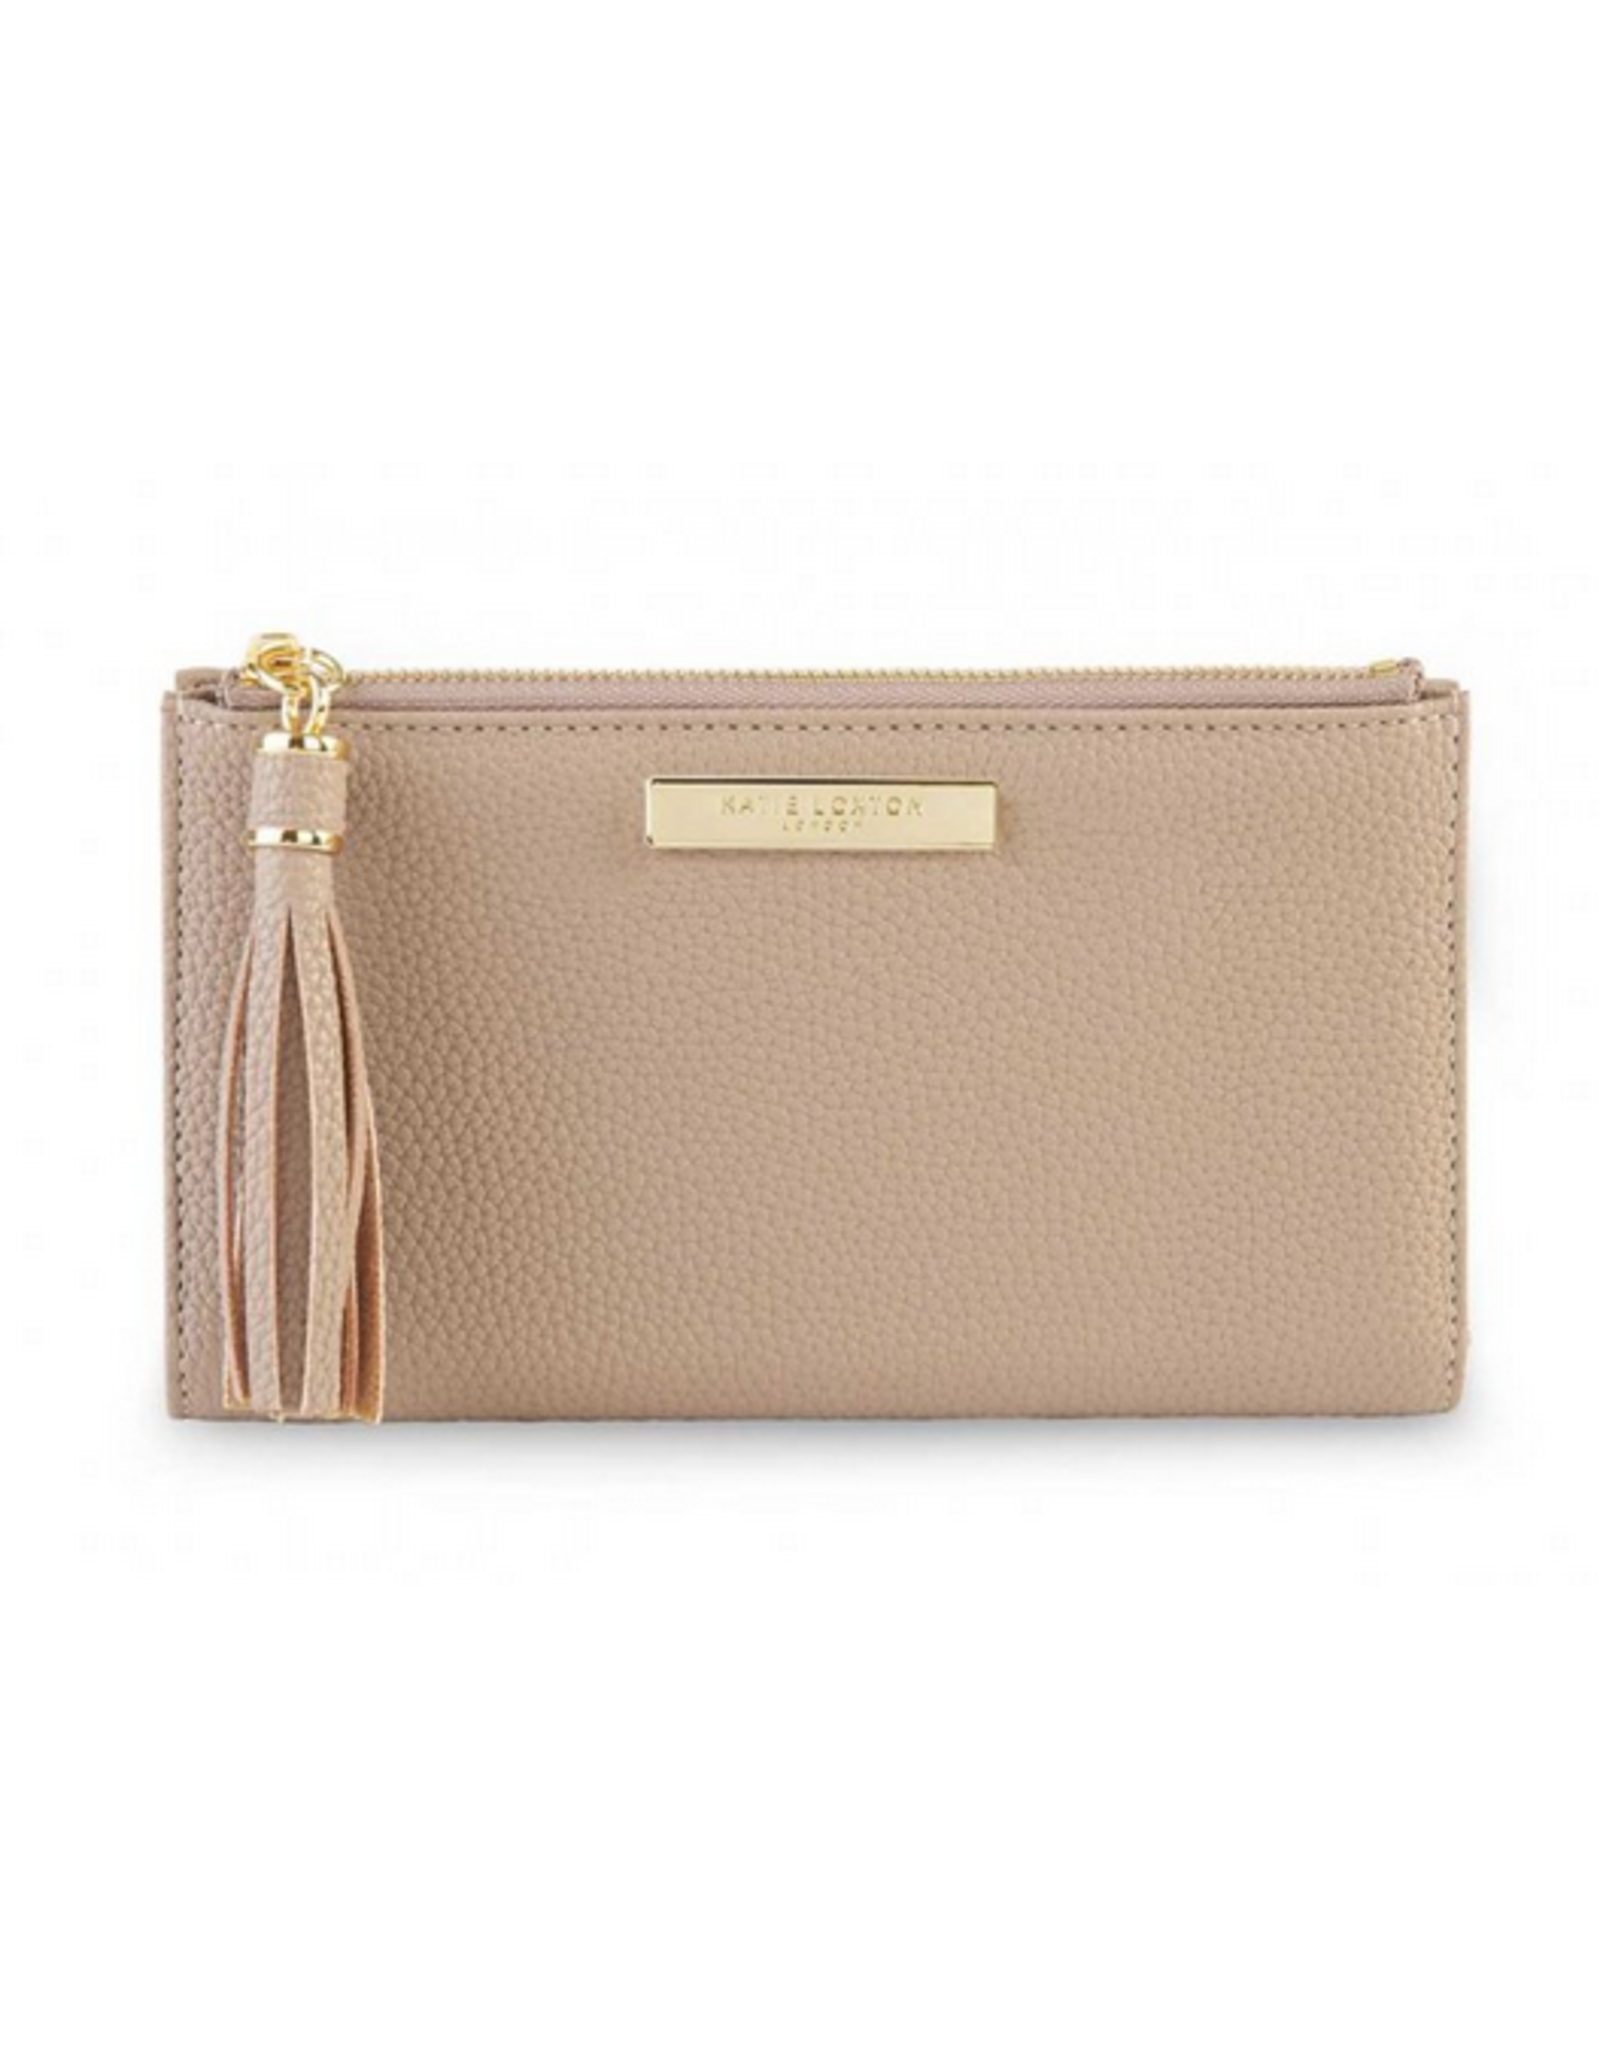 Katie Loxton Tassel Fold Out Wallet in Taupe